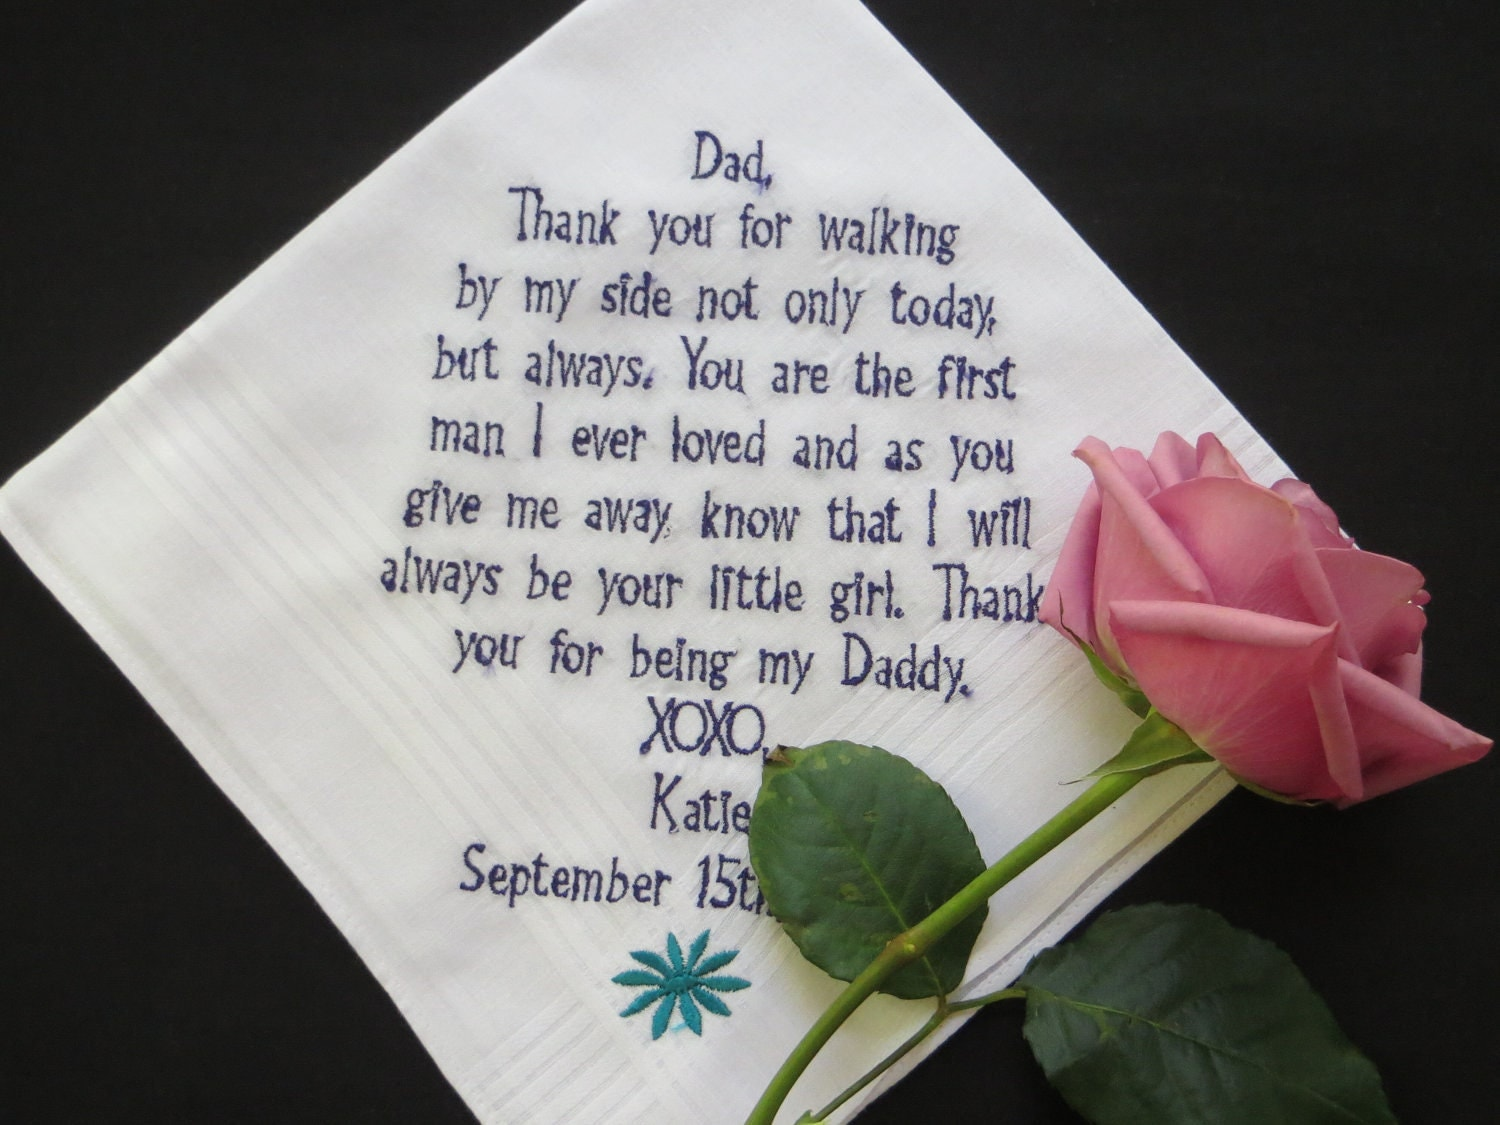 Thank You Gifts At Weddings: 7 Great Thank You Gift Ideas For Your Parents On Your